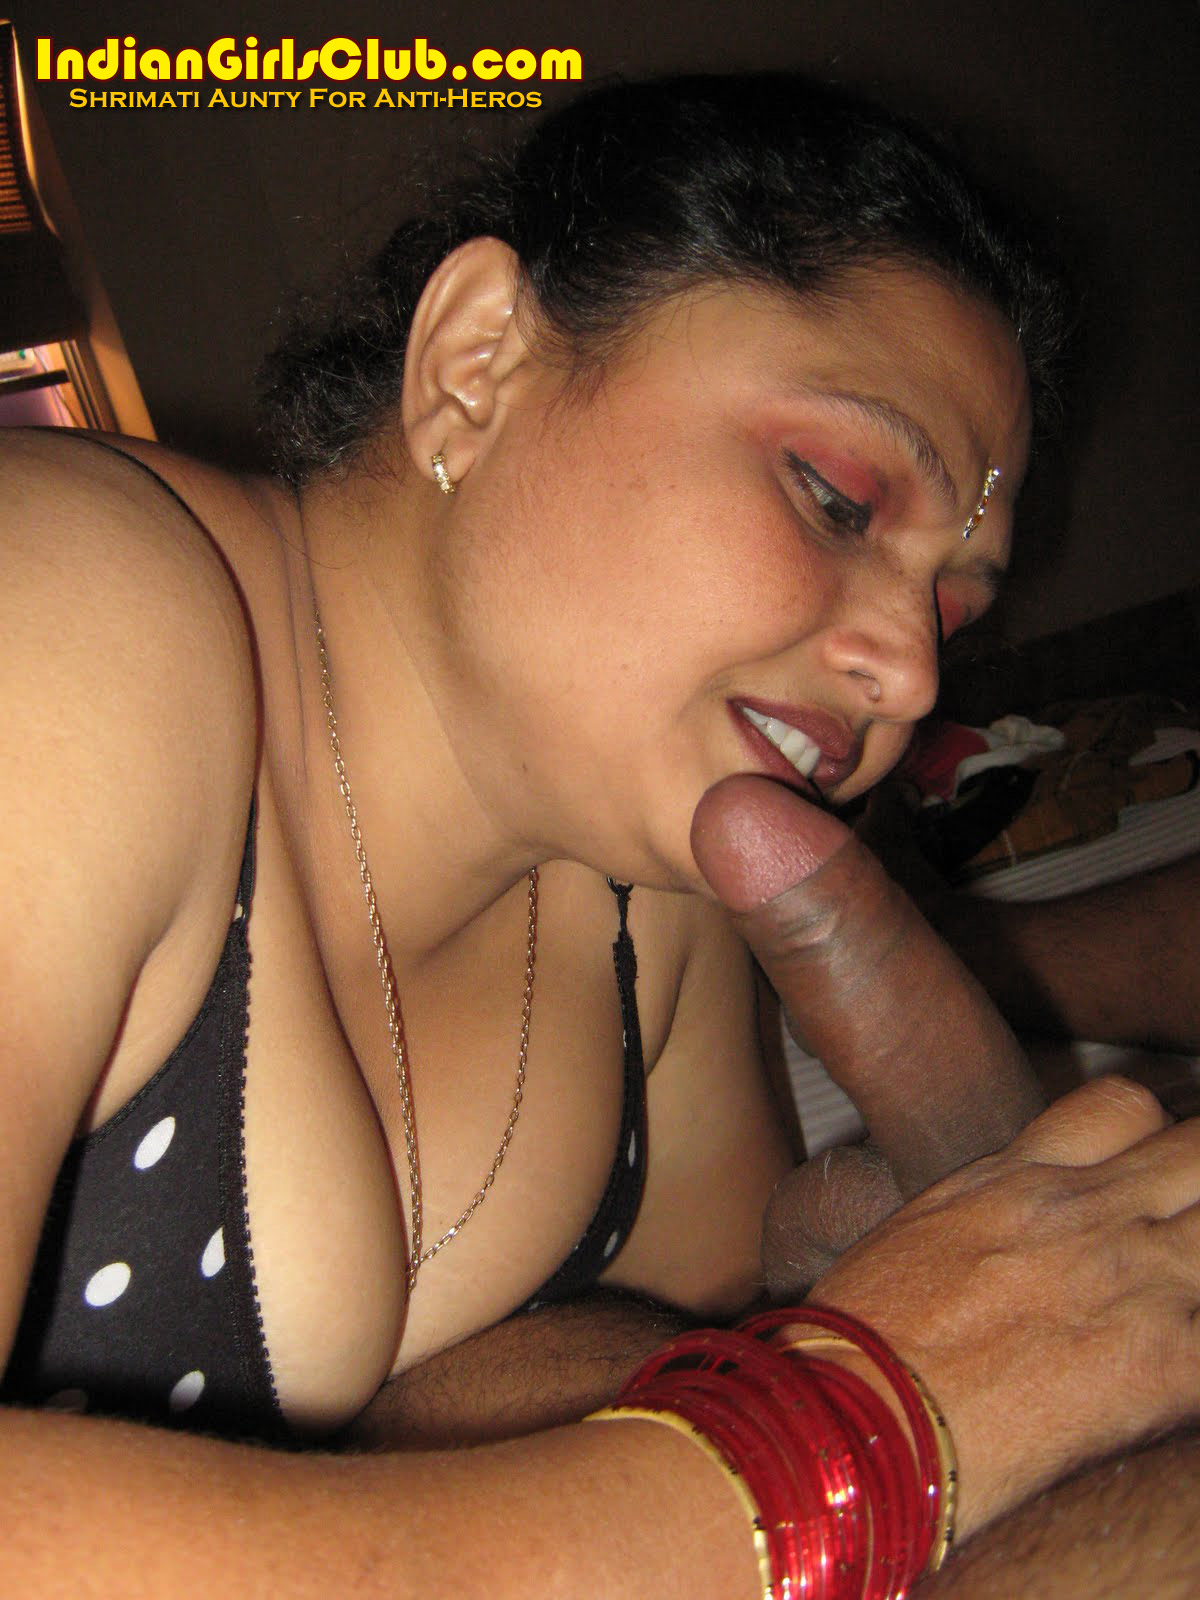 Telugu lovers sex my skype id moddatelugu09 add me - 3 1